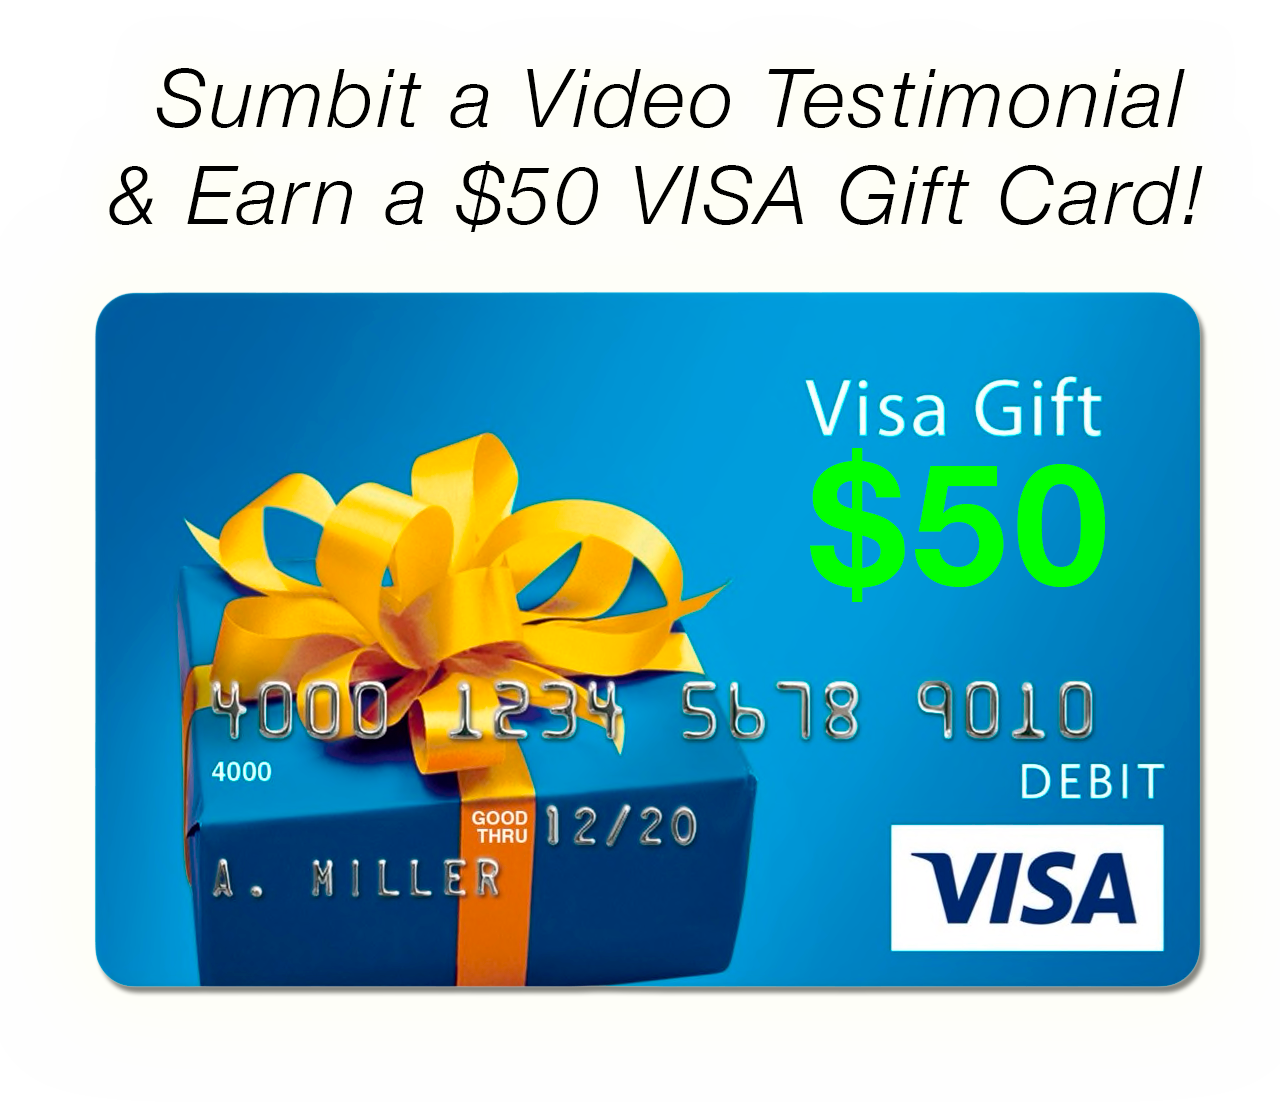 Earn a Free $50 Gift Card for Sharing Your Video Testimonial! (or Pictures)